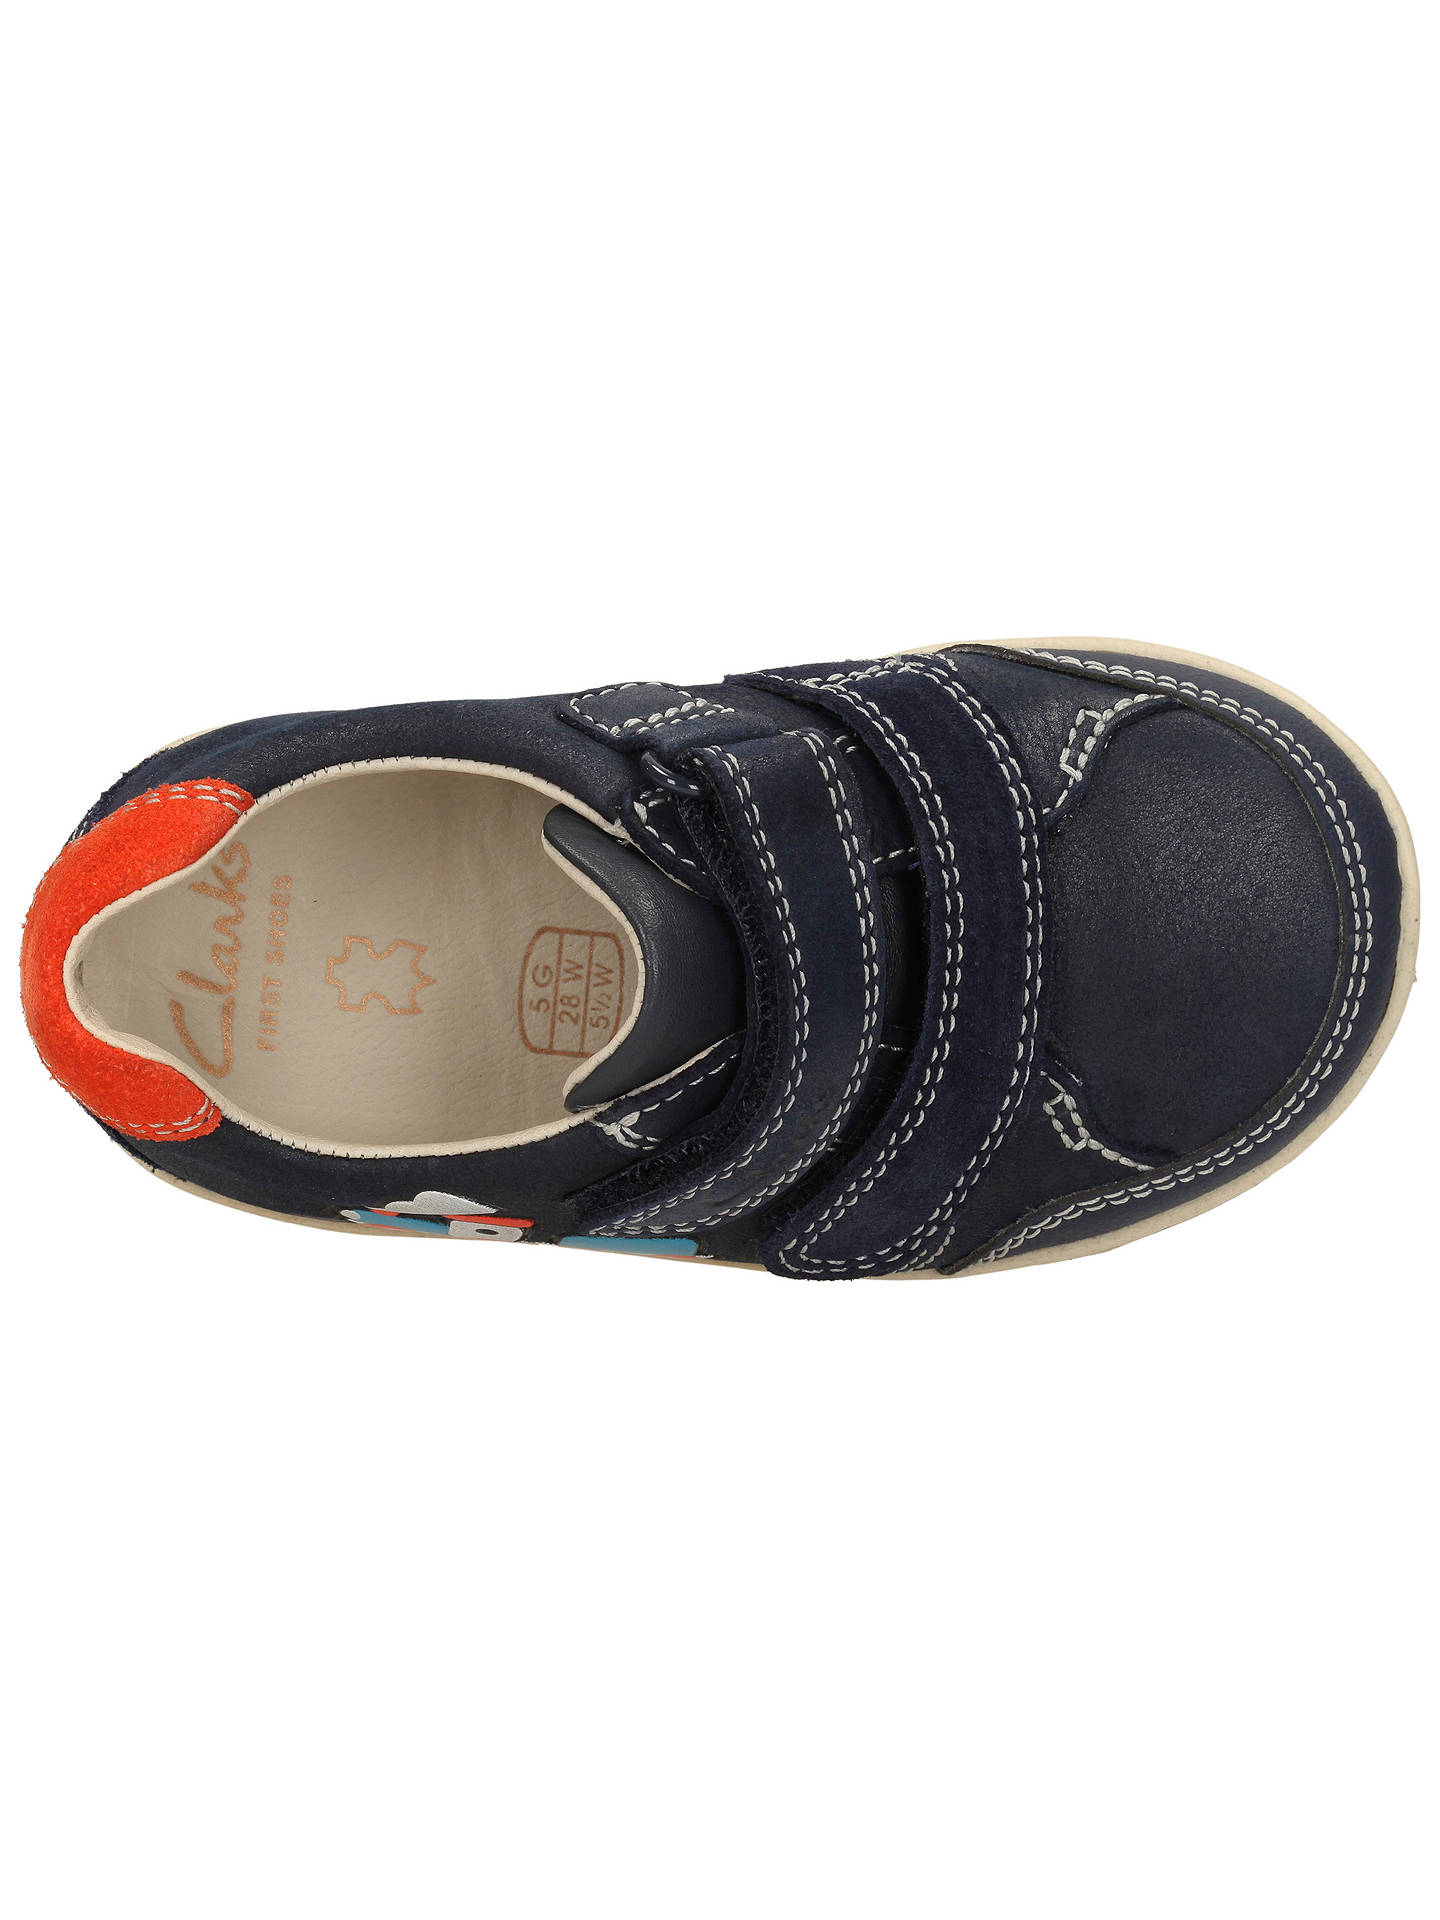 90a470b4334c Buy Clarks Children's Softly Tom Leather Shoes, Navy, 4F Jnr Online at  johnlewis.